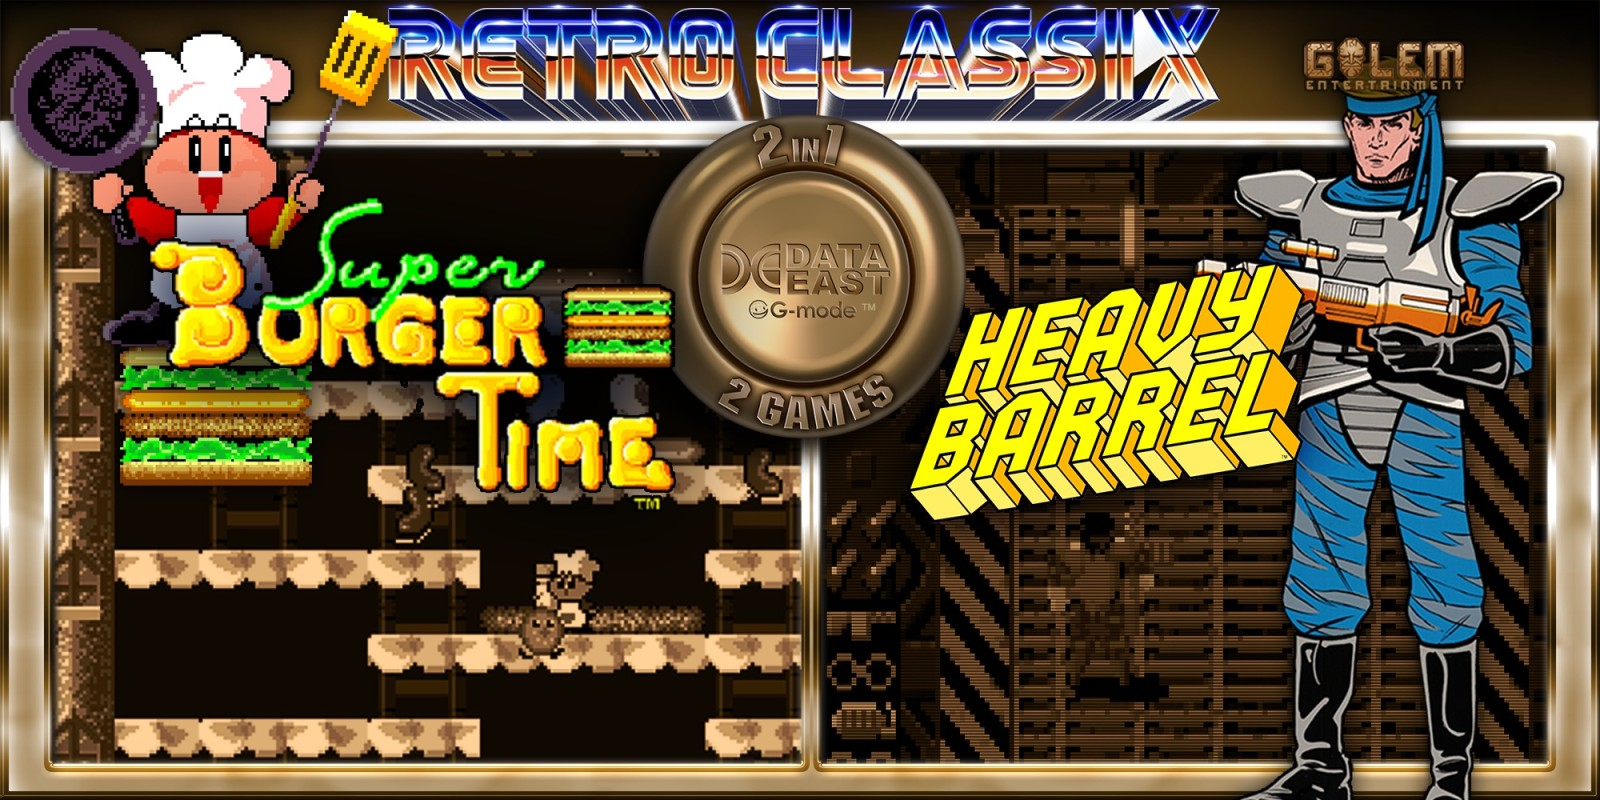 Retro Classix 2-in-1 : Heavy Barrel & Super BurgerTime